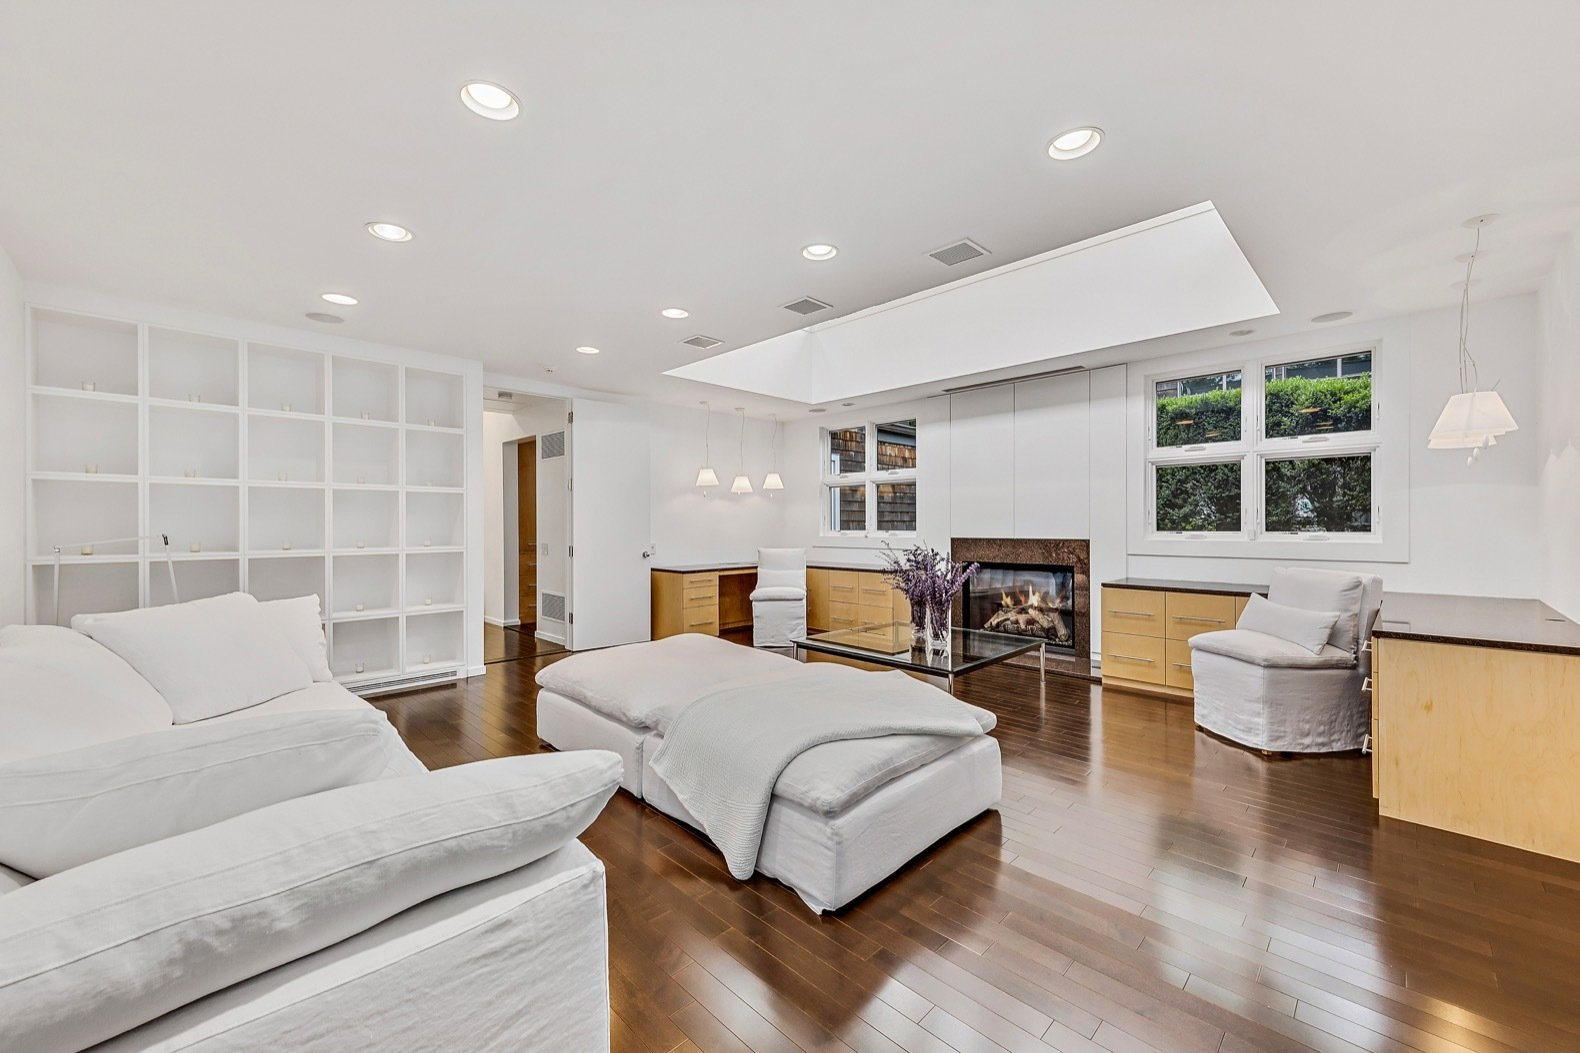 Bedroom, Recessed, Dark Hardwood, Storage, Pendant, Shelves, Bed, and Chair The current owner added hardwood floors and repainted the walls a luminous white. Pictured is a secondary bedroom with a cupola and gas fireplace.  Bedroom Pendant Chair Dark Hardwood Recessed Photos